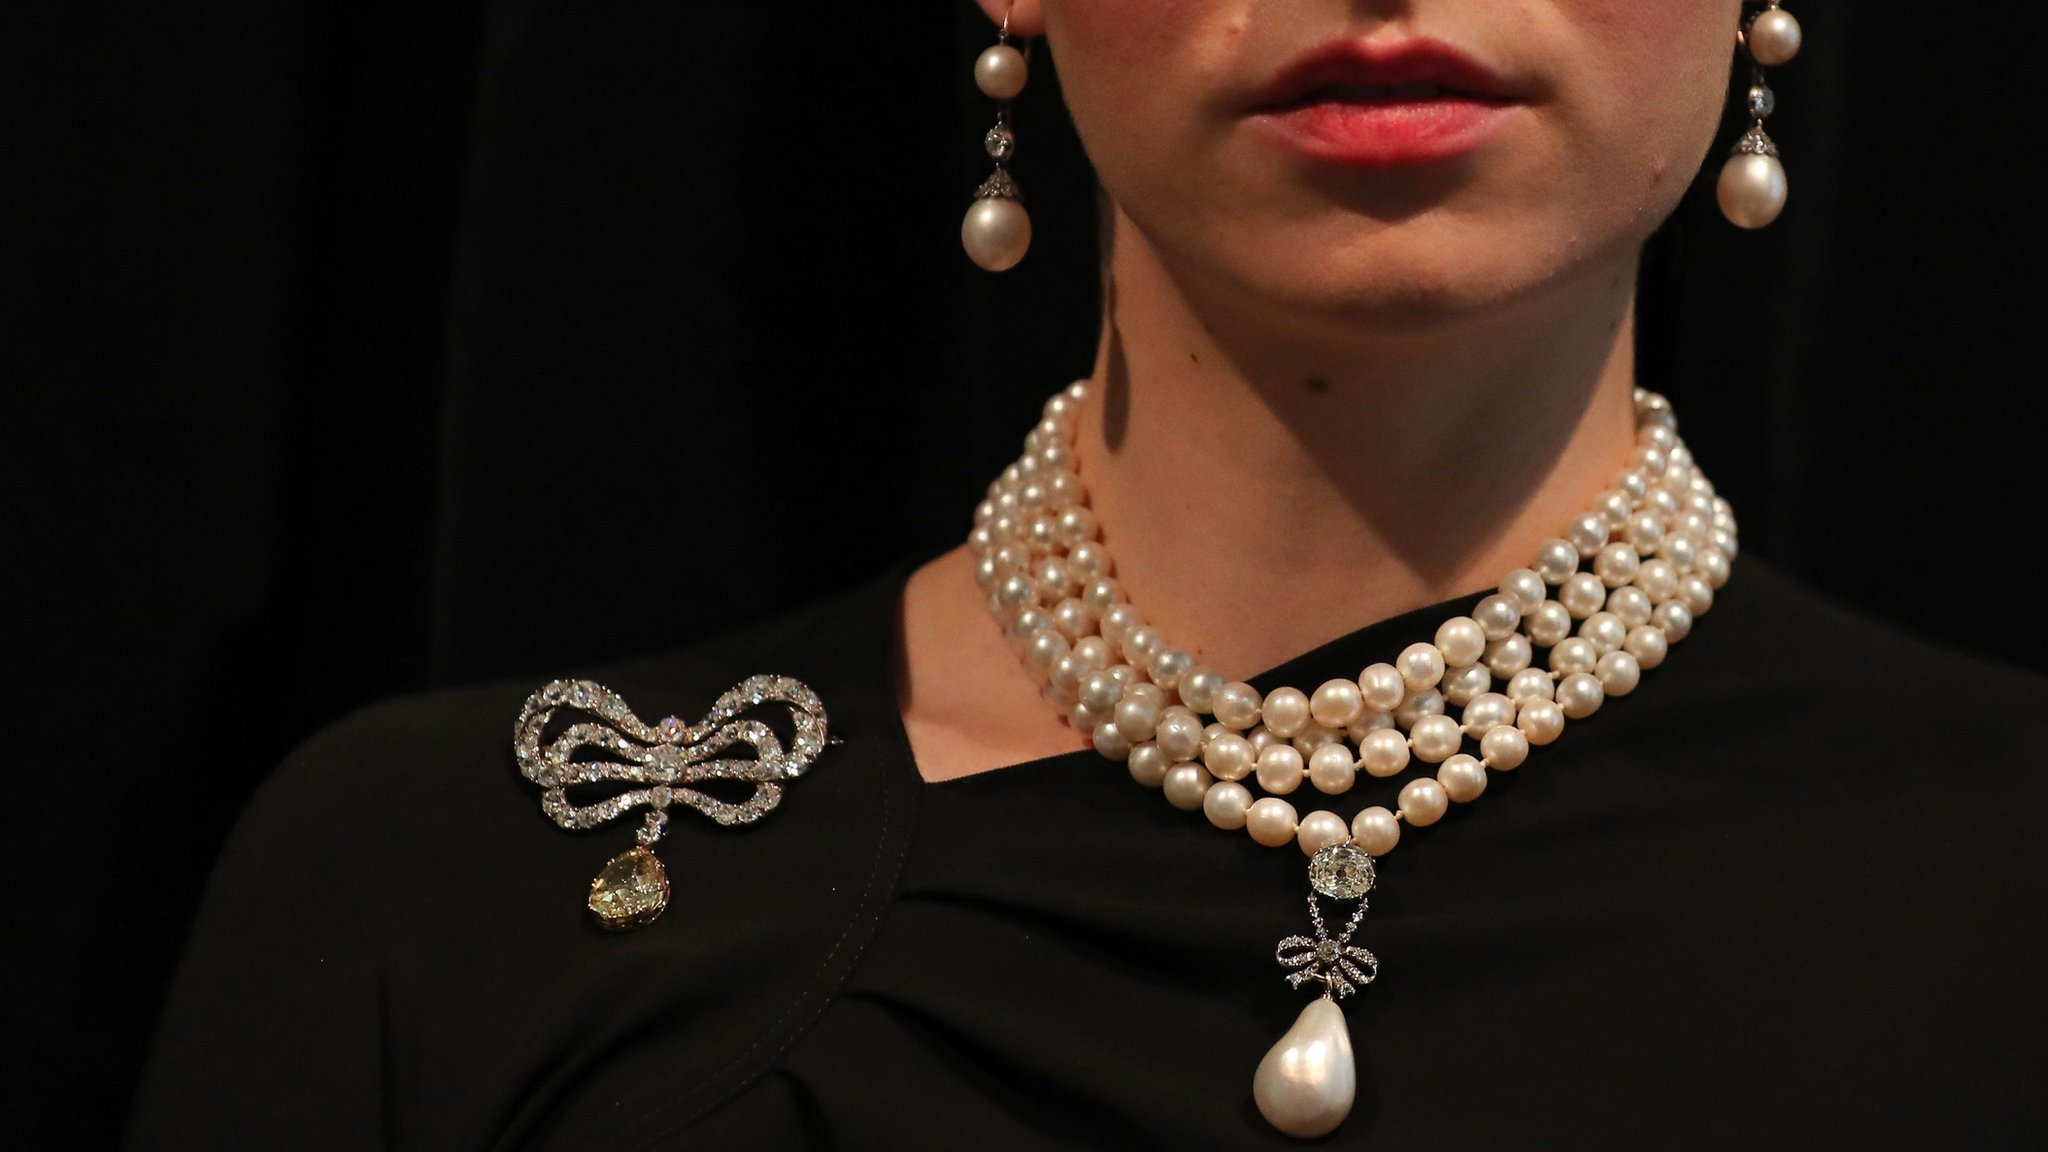 Marie Antoinette pearl auctioned for record $36m